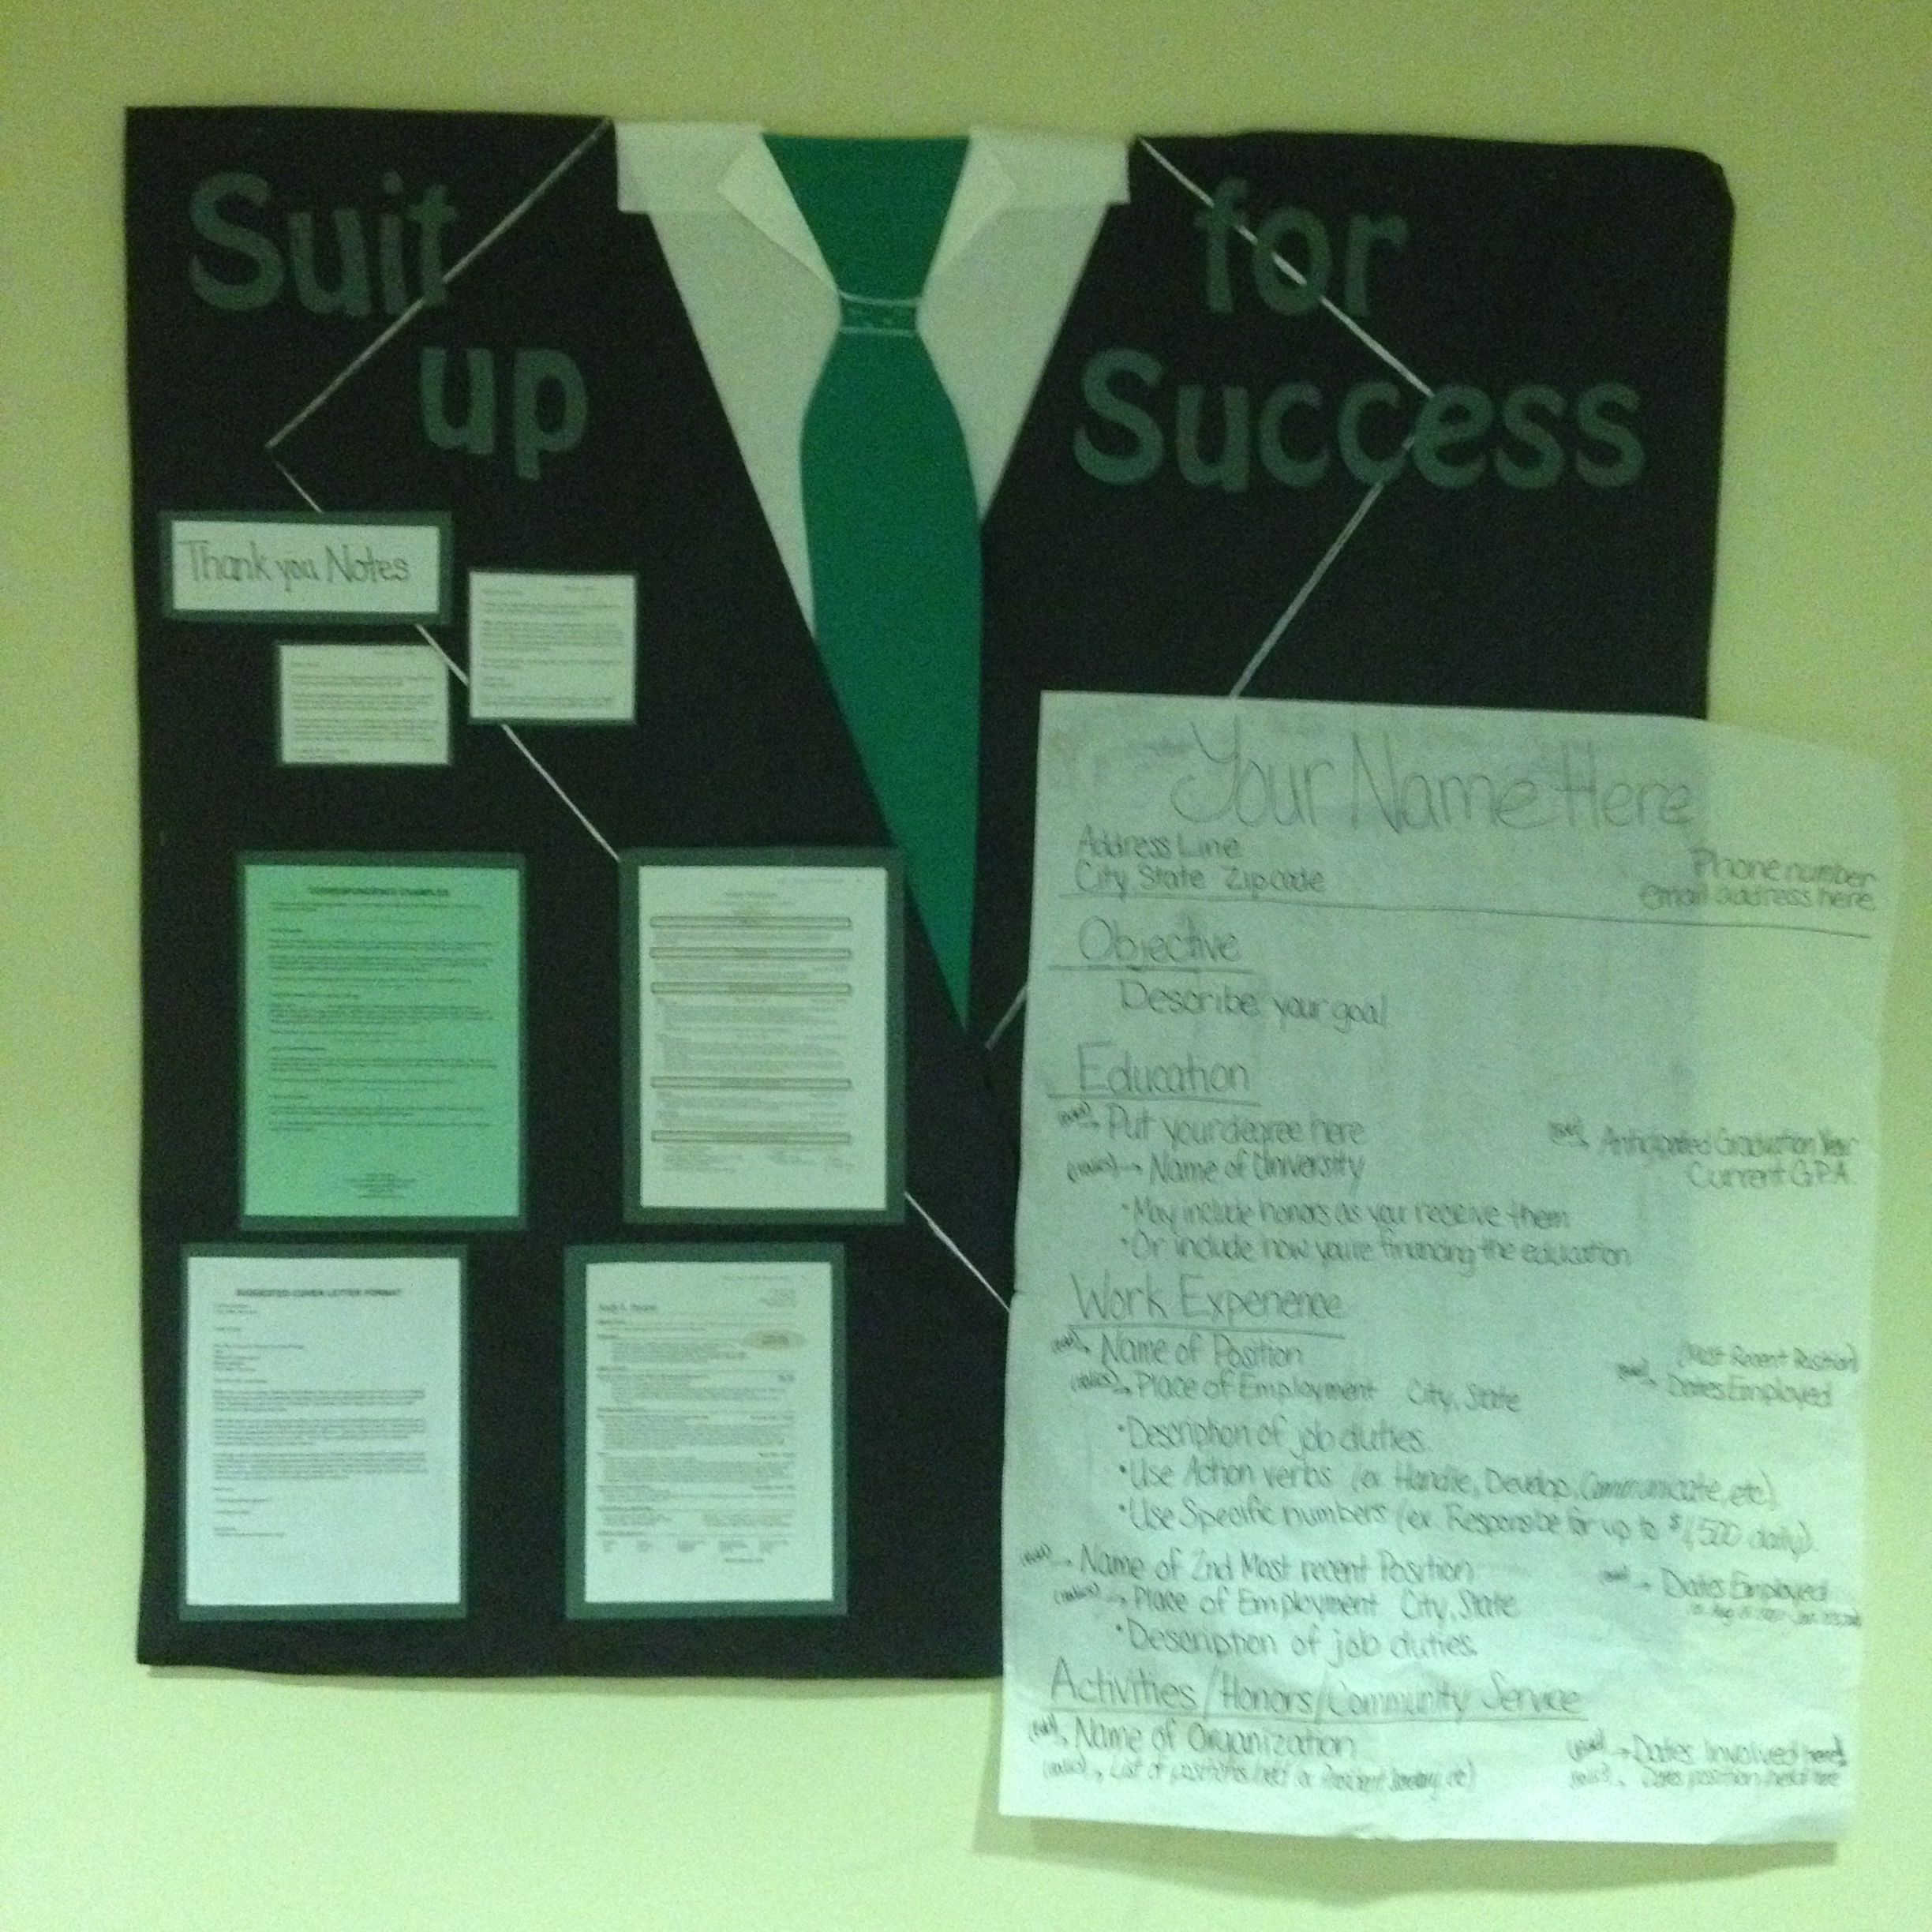 Suit Up For Success